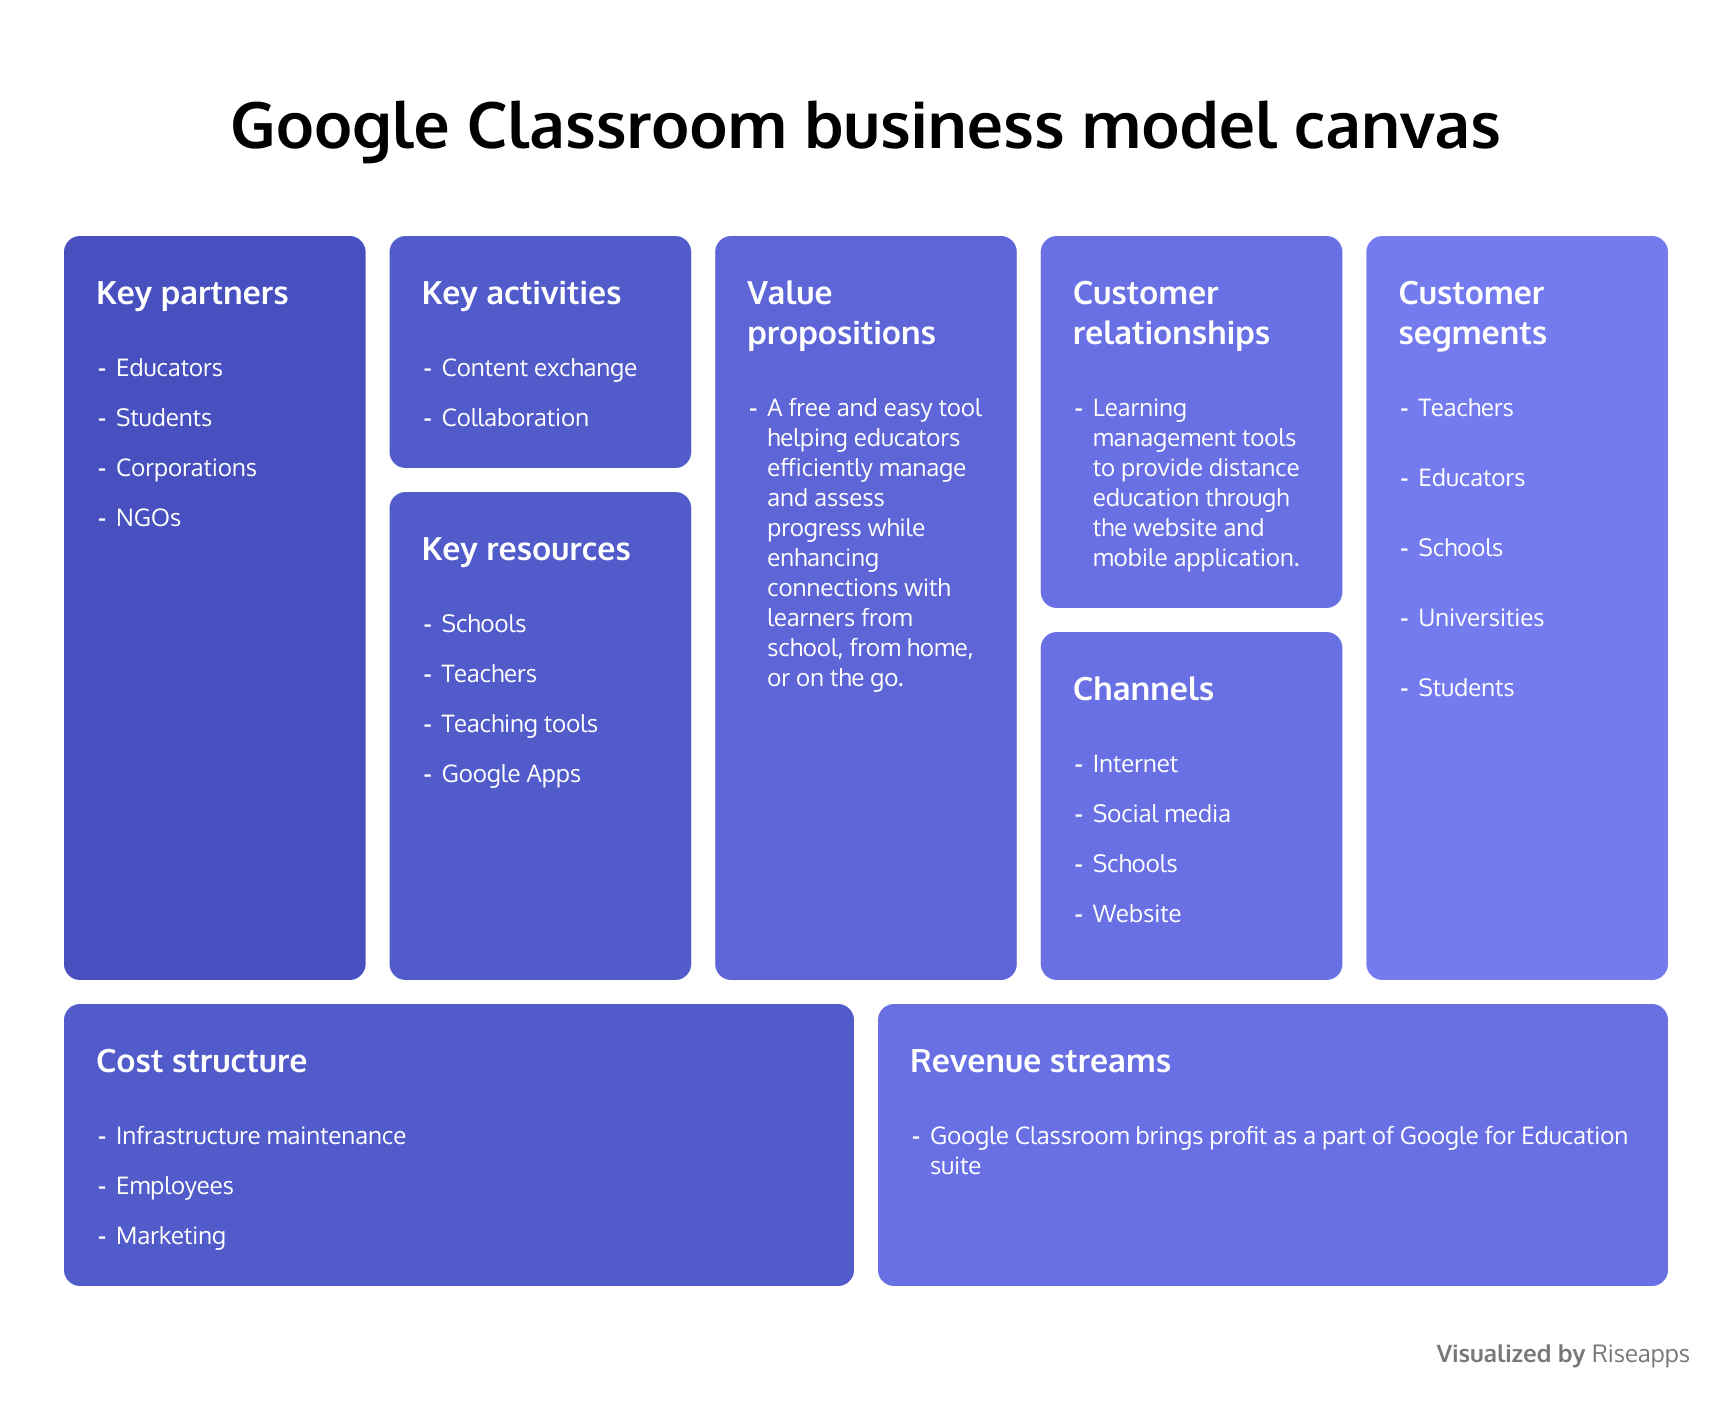 Google Classroom business model canvas